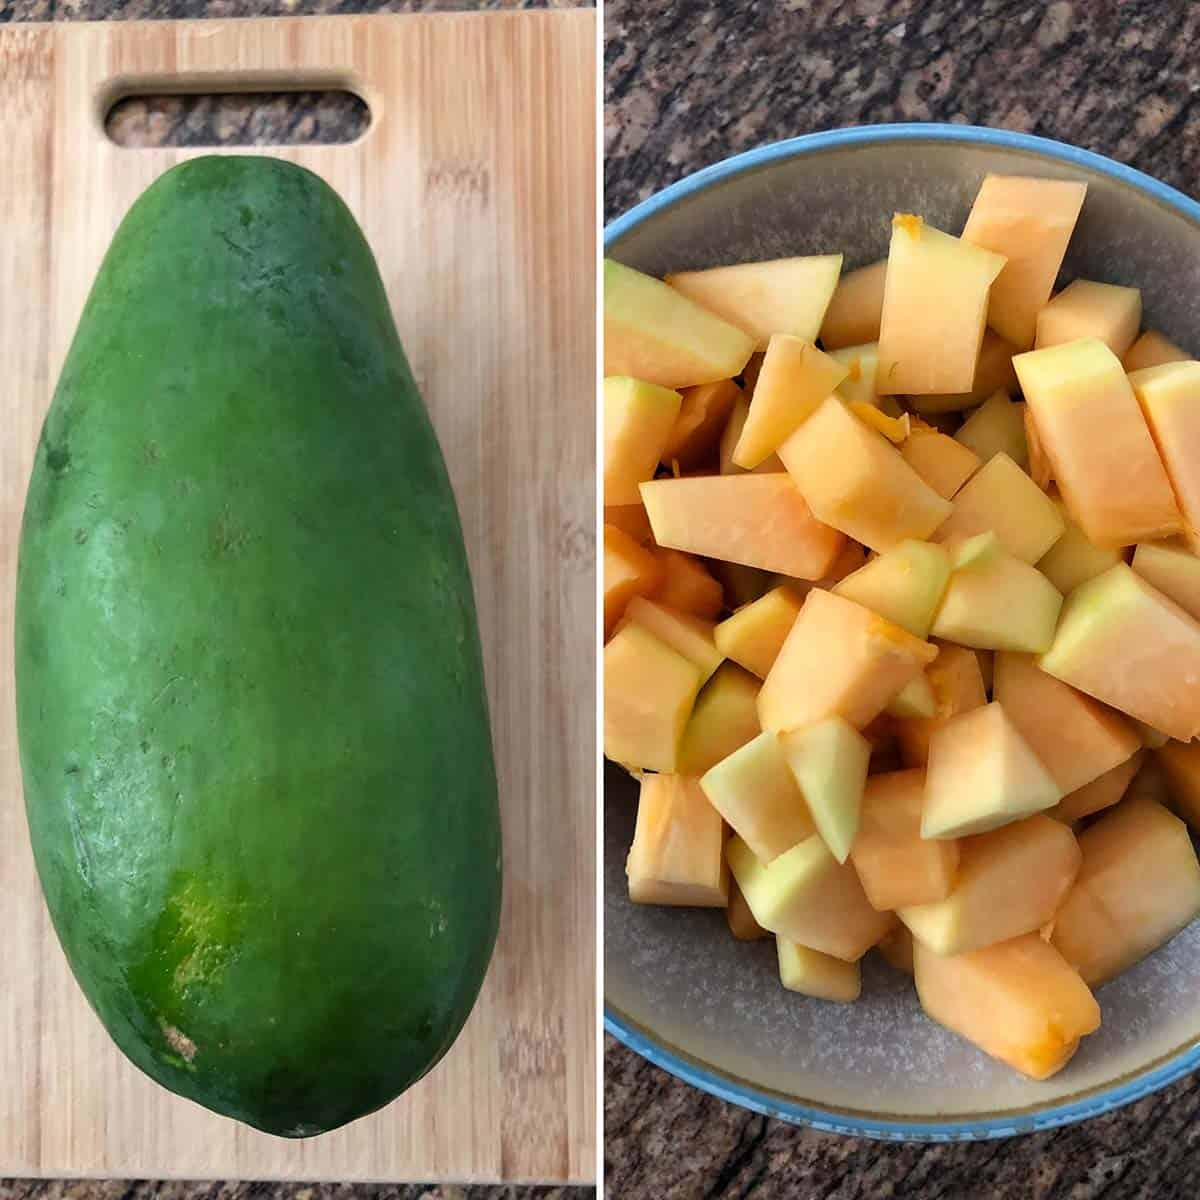 Side by side photos of whole Green papaya and chopped